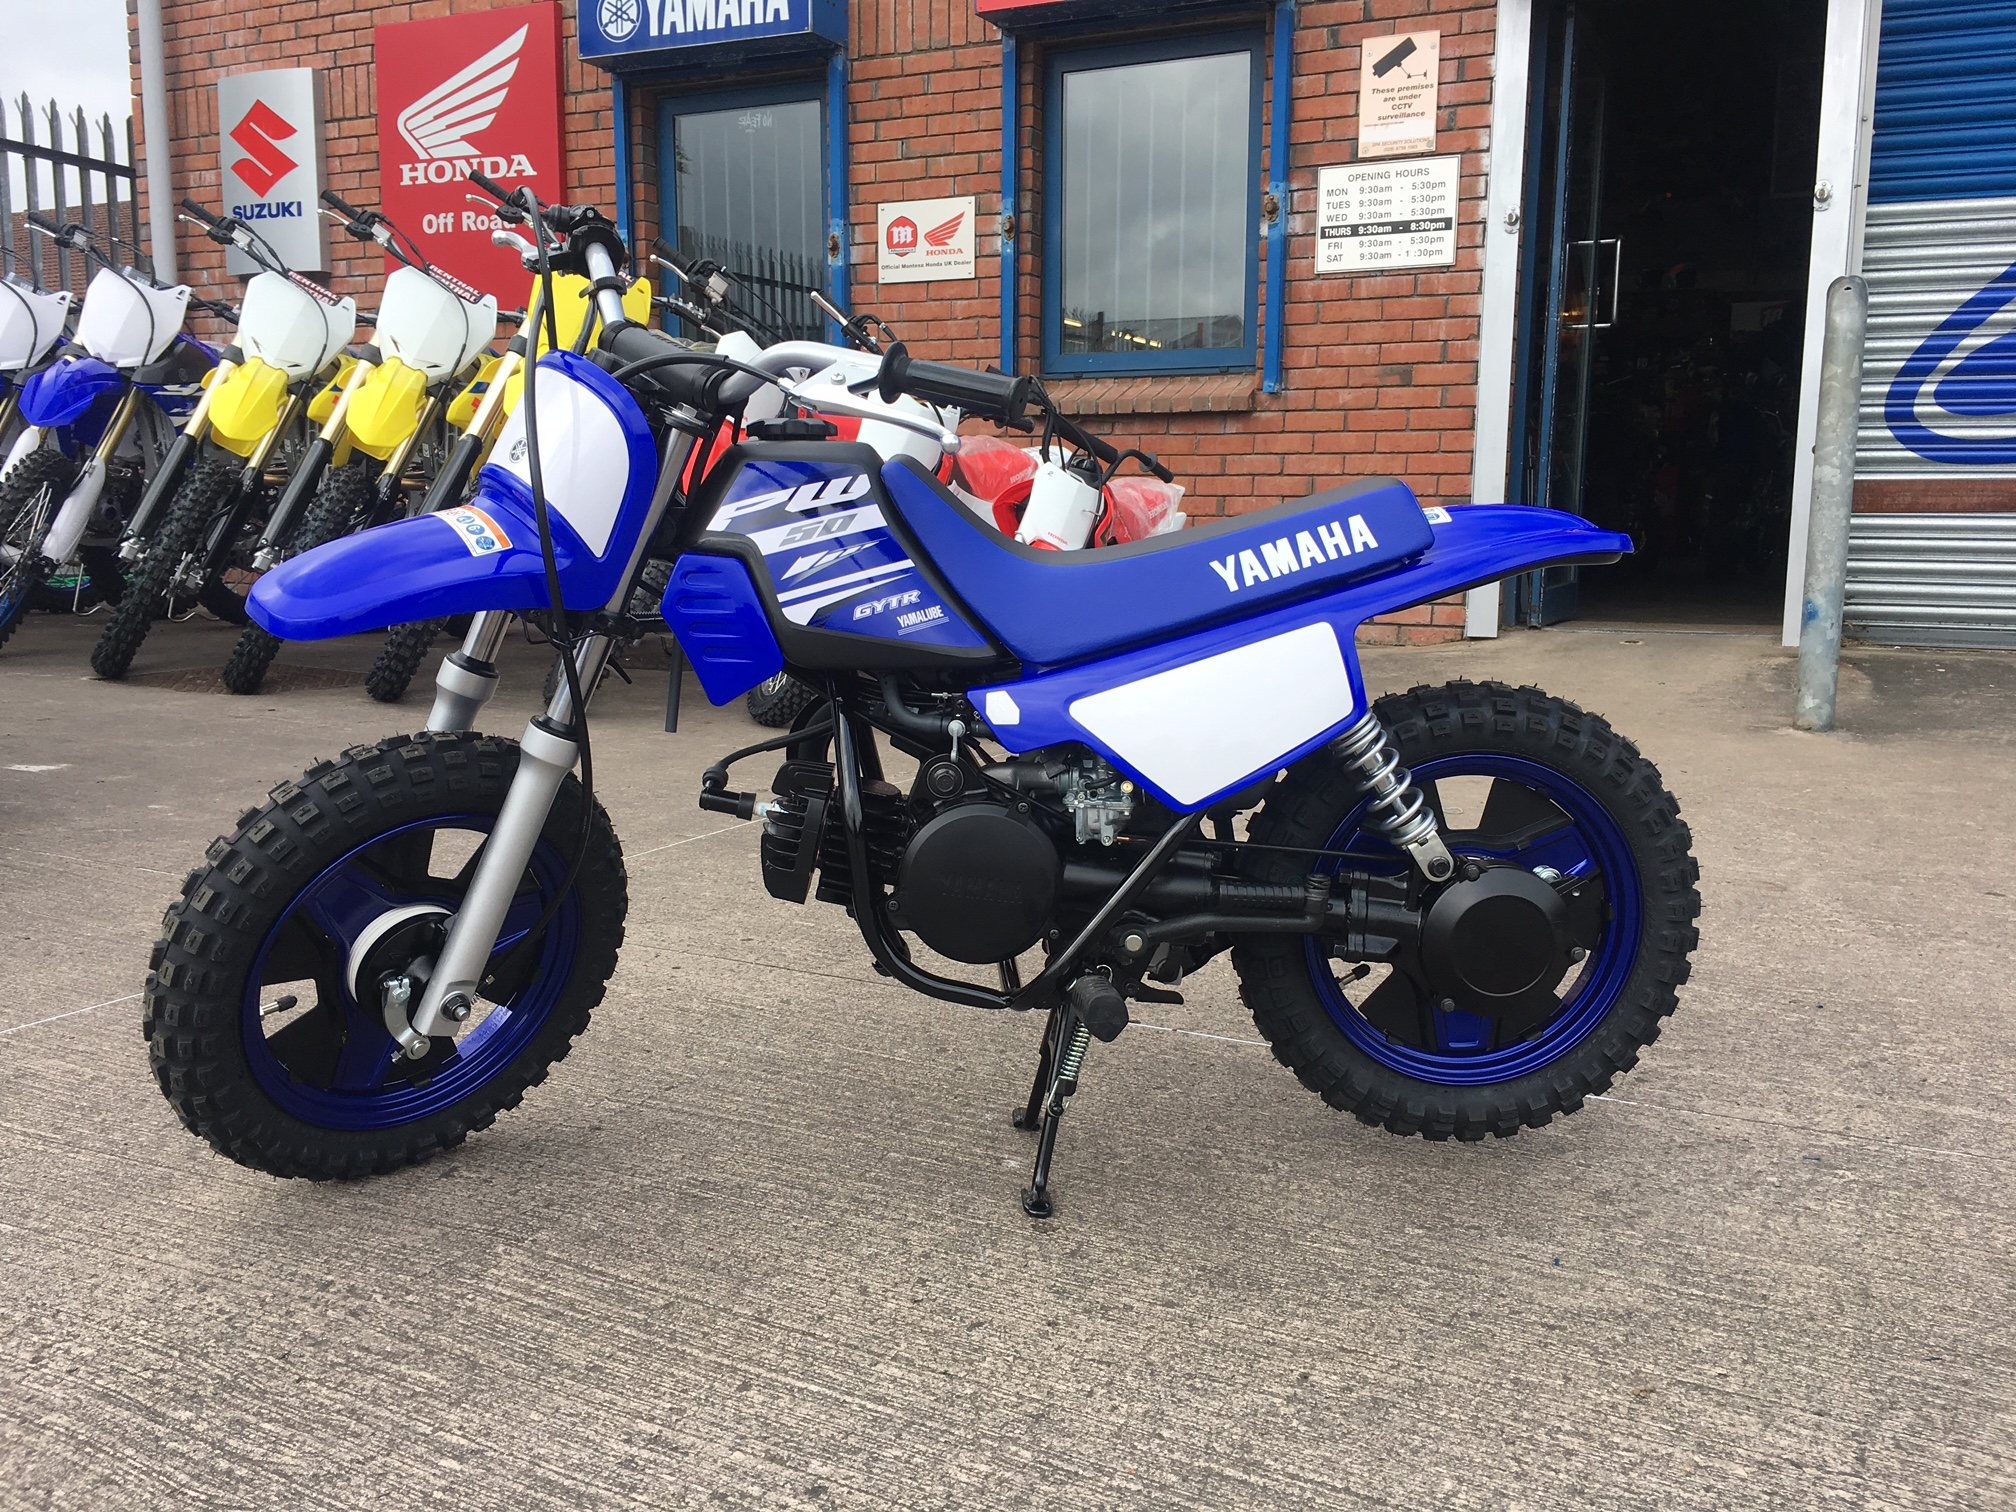 2018 yamaha pw50 russells motorcycles for 2017 yamaha pw50